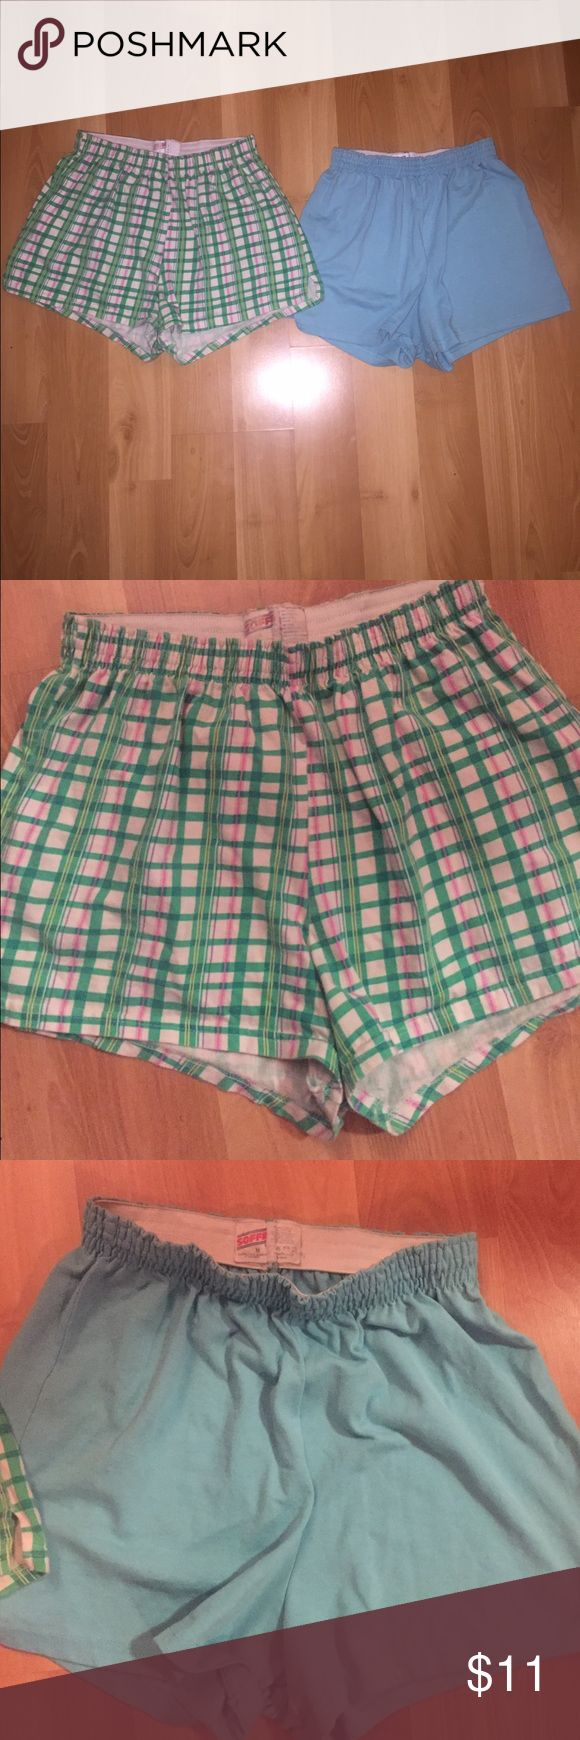 2 pair Soffe short bundle! Originally 3 for $20 + shipping via Soffee site. Vibrant shorts for a steal! Plaid is a size L blue size M. Soffe Shorts